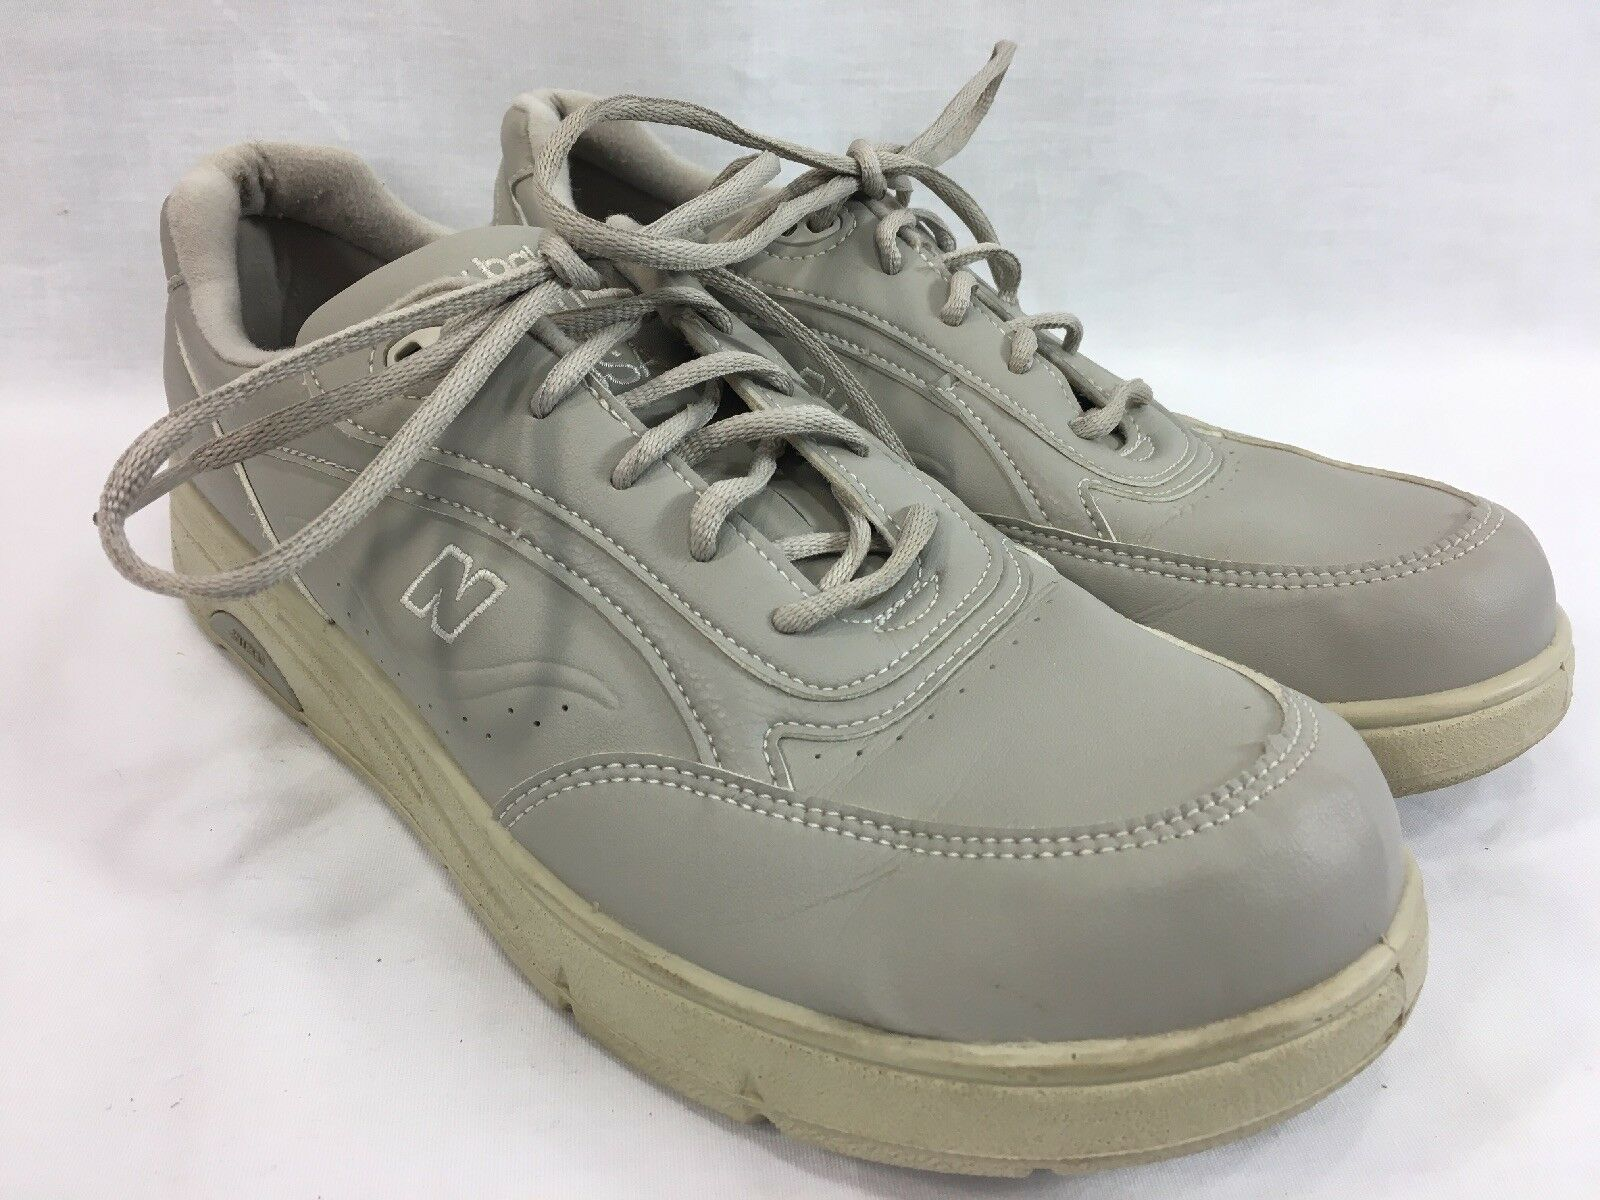 New New New Balance 811 WW811BE Sneakers Schuhes Damenschuhe 12 2A DSL-2 Walking Comfort USA 3e742e